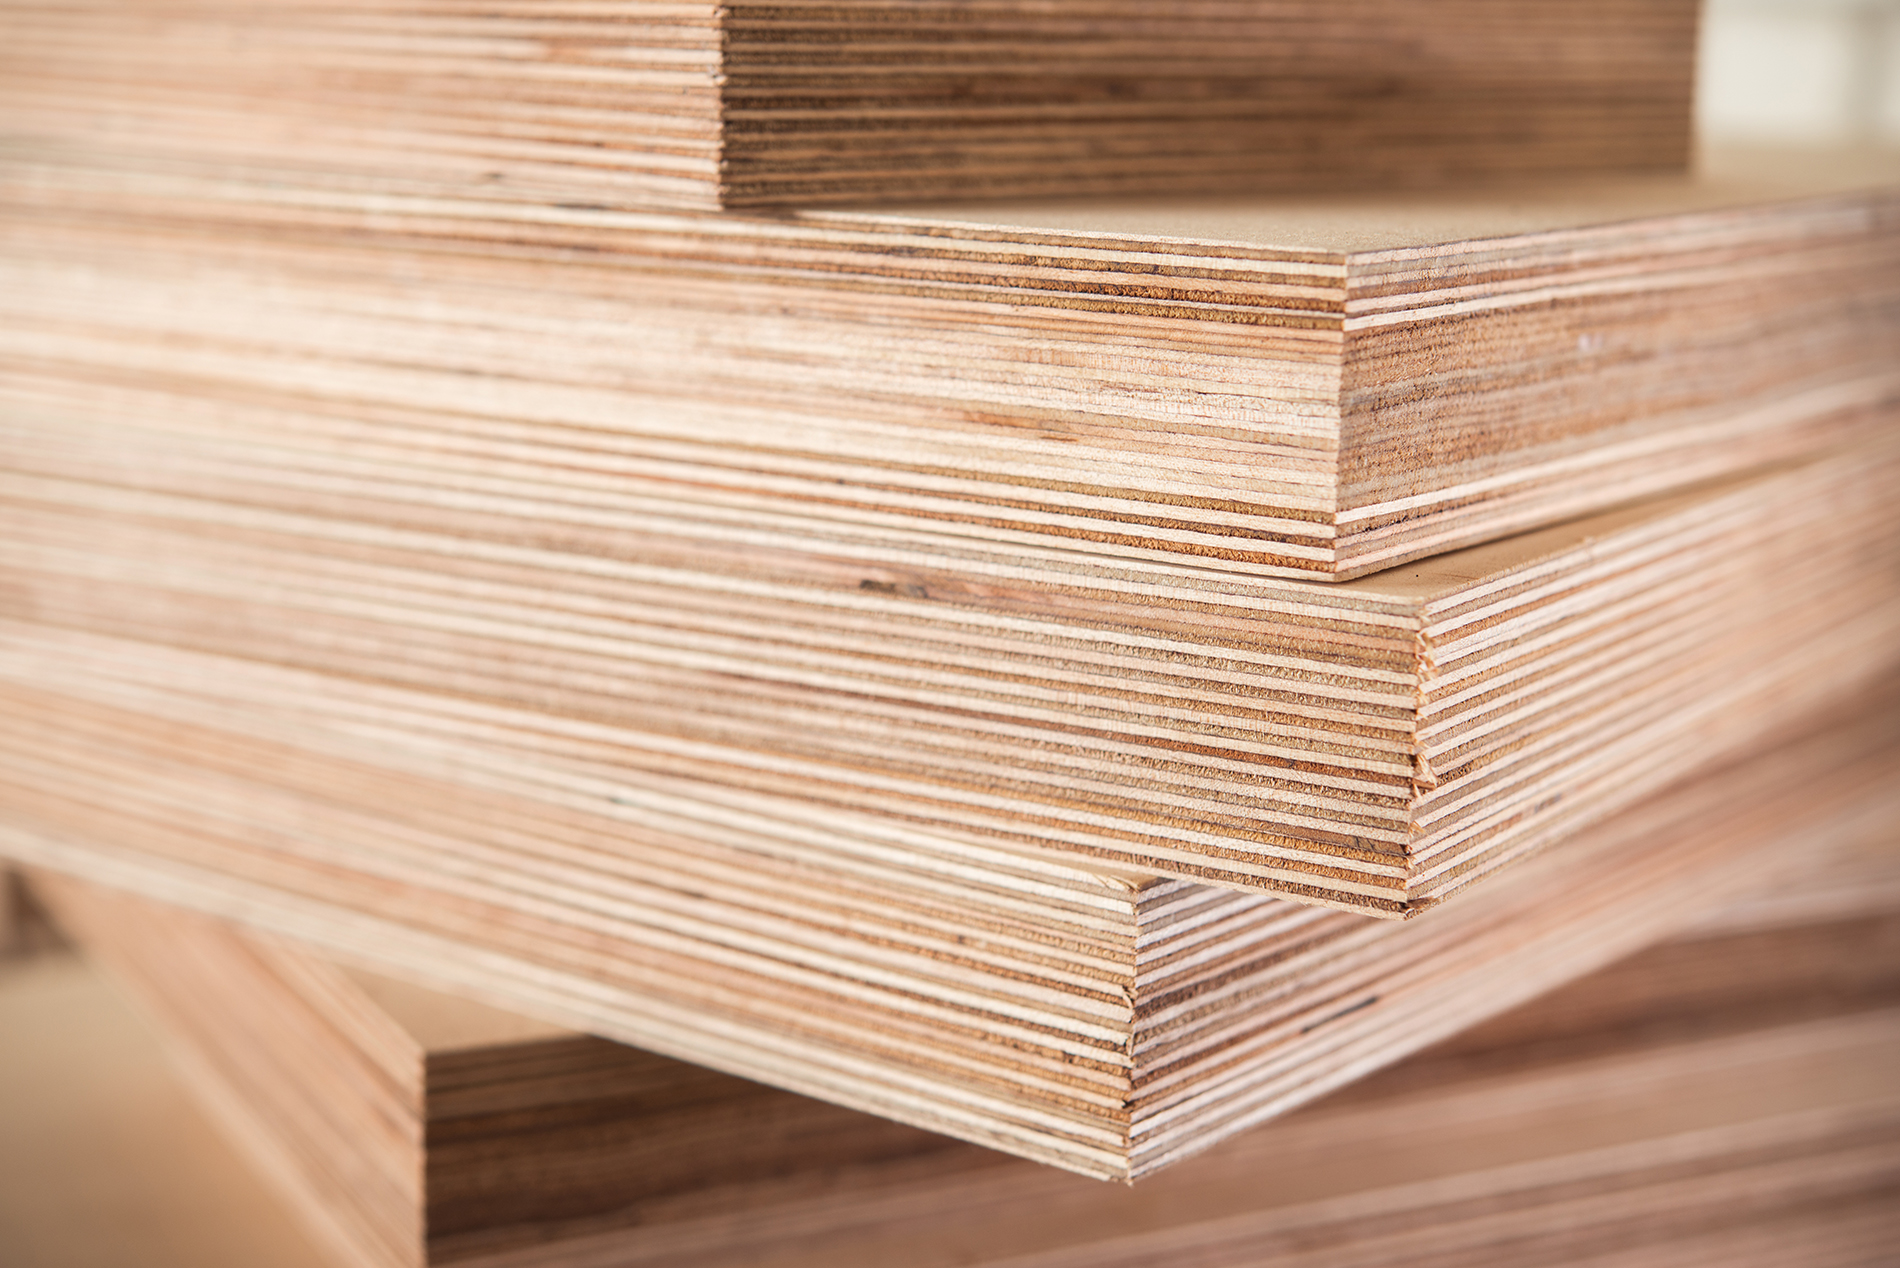 Prices For Wood Other Construction Materials Far Outpace